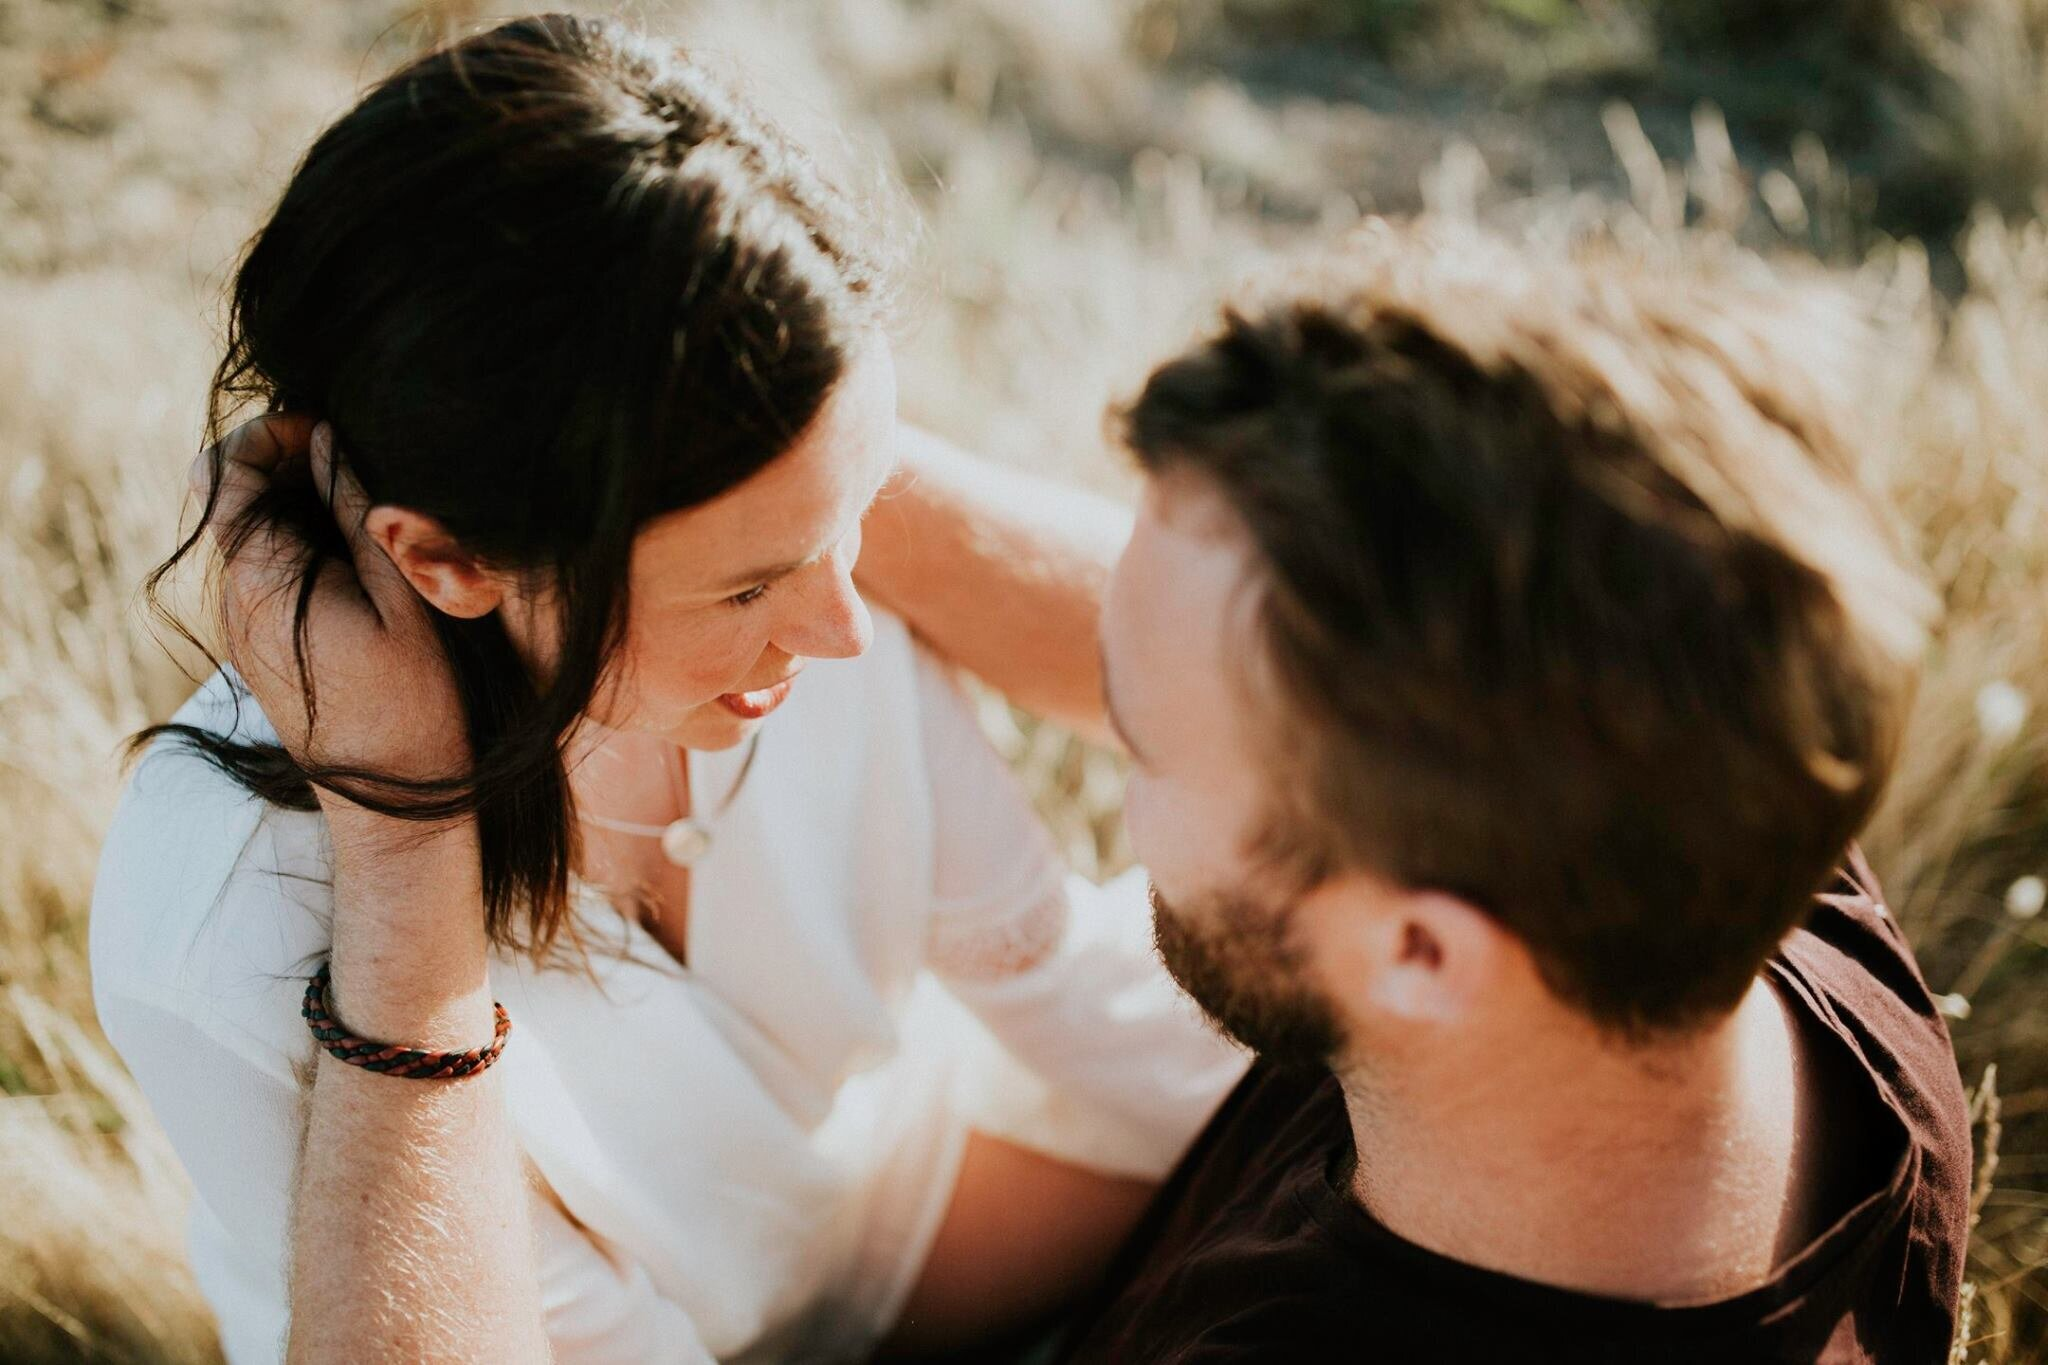 intimate-couples-photography-melbourne-sapphire-and-stone-photography